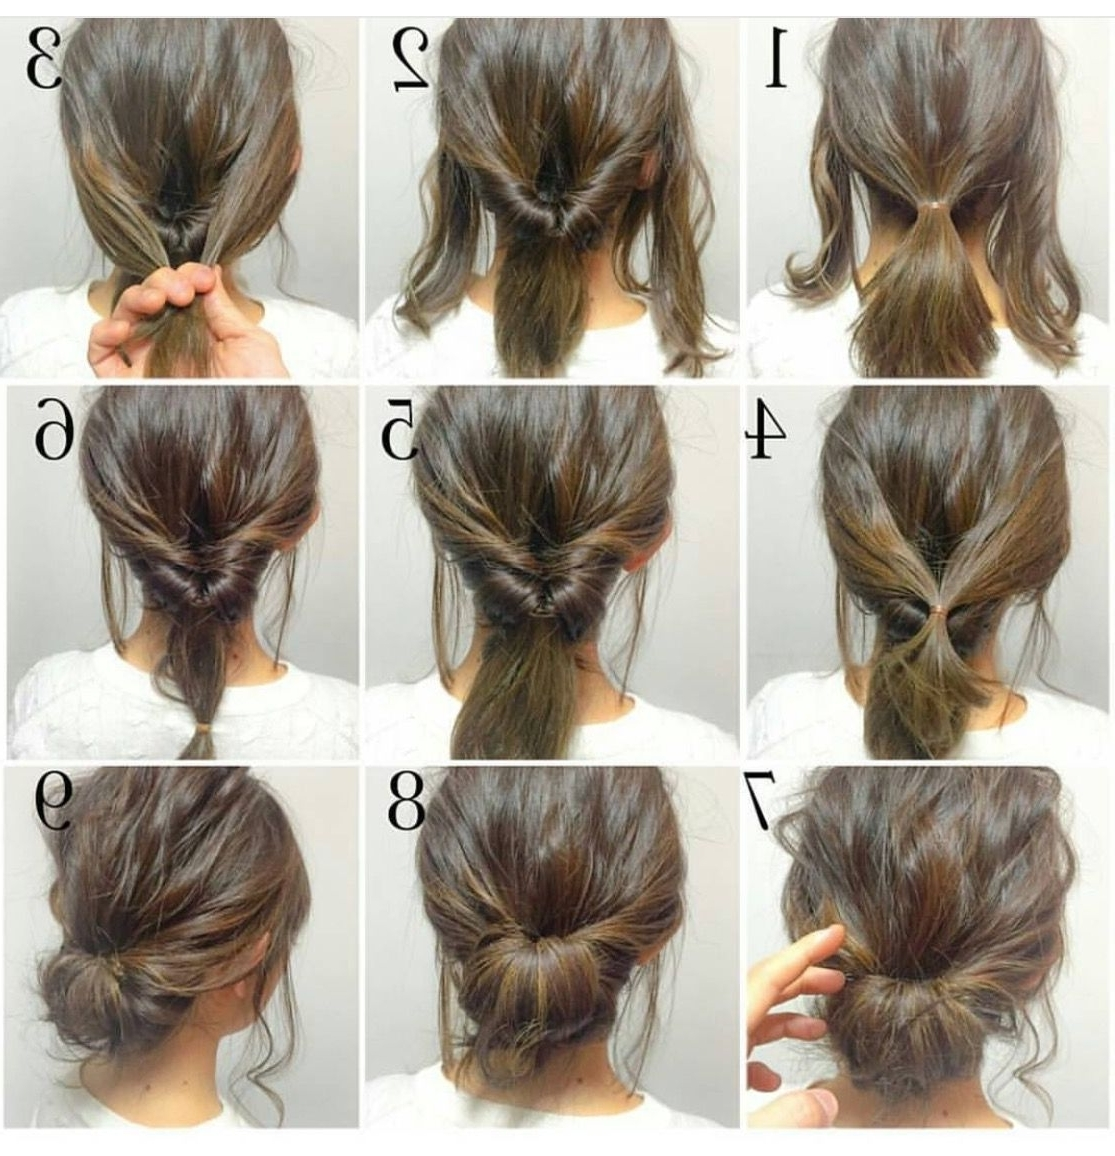 4 Messy Updos For Long Hair | Hairz | Pinterest | Updos, Hair Style With Low Messy Updo Hairstyles (View 4 of 15)